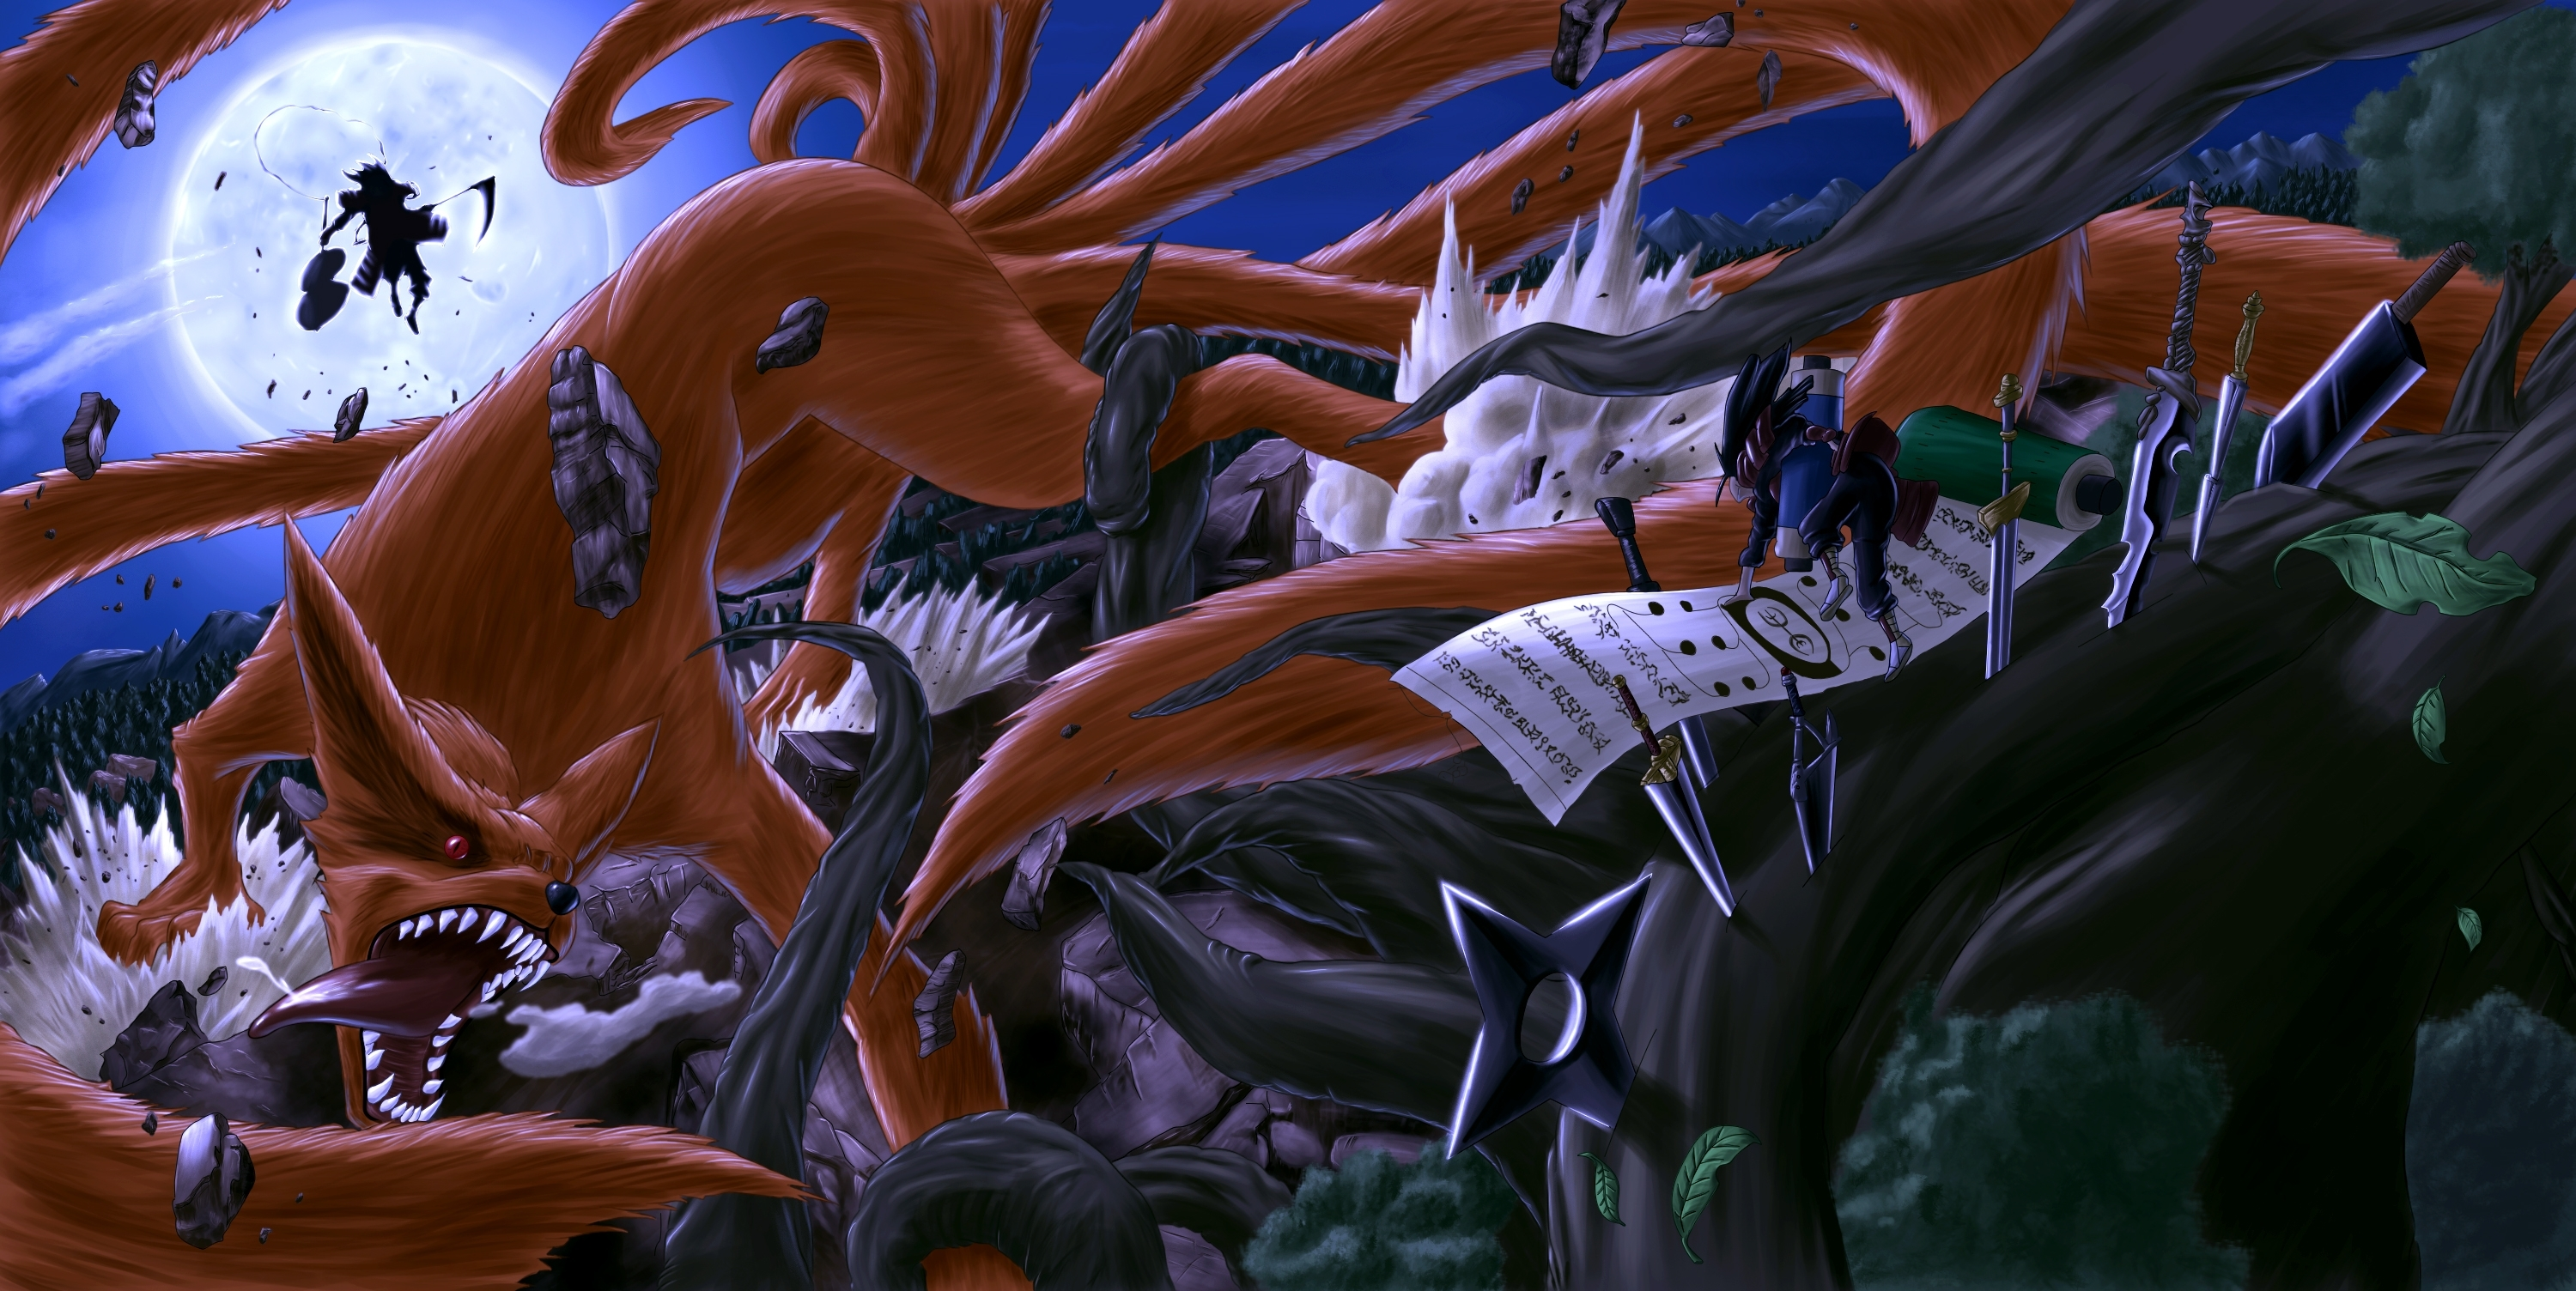 download colo naruto madara vs shodaivinc wallpaper | full hd